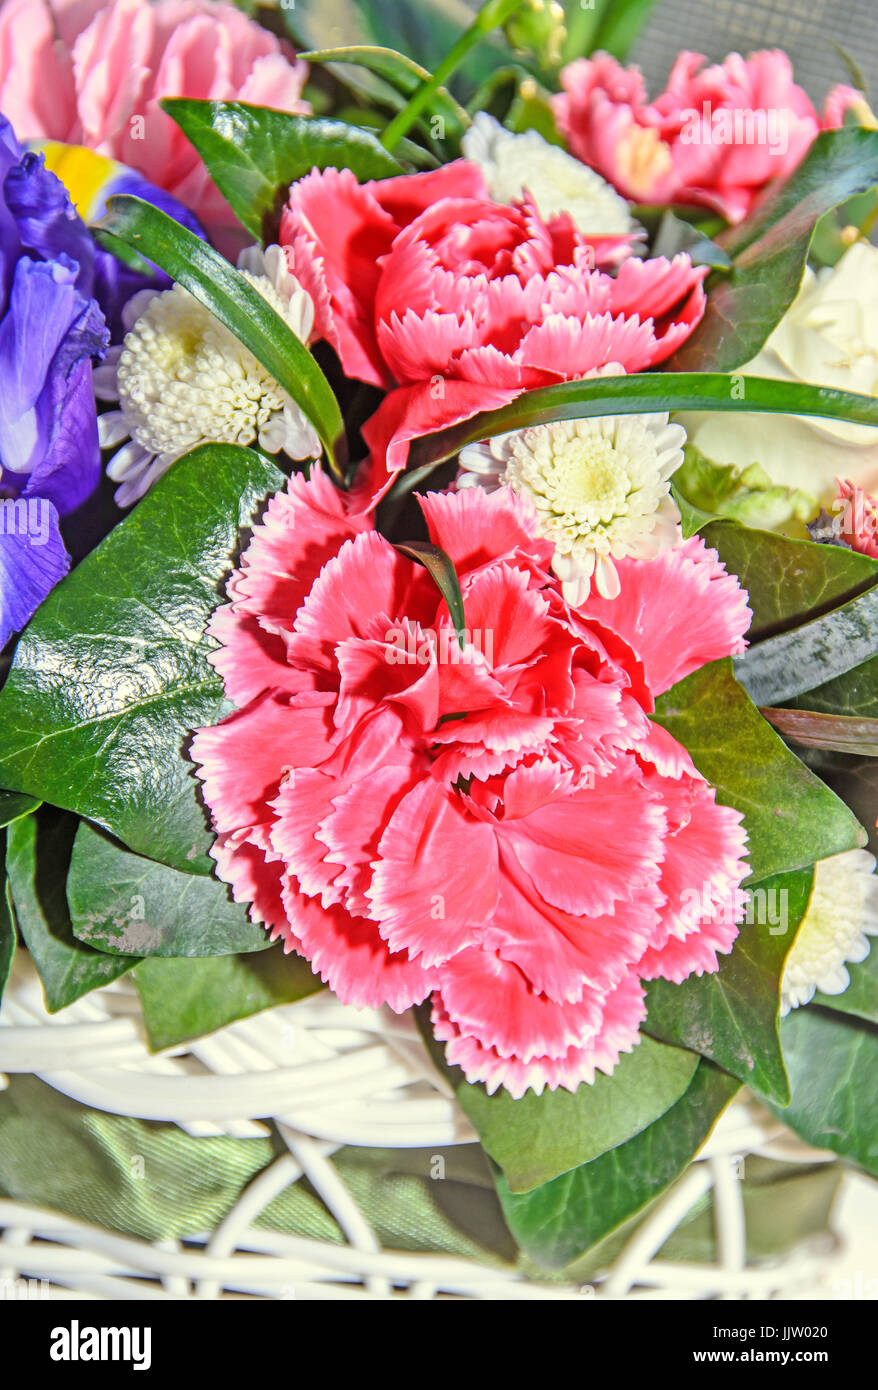 Floral arrangement with colored flowers roses, iris, chrysanthemums ...